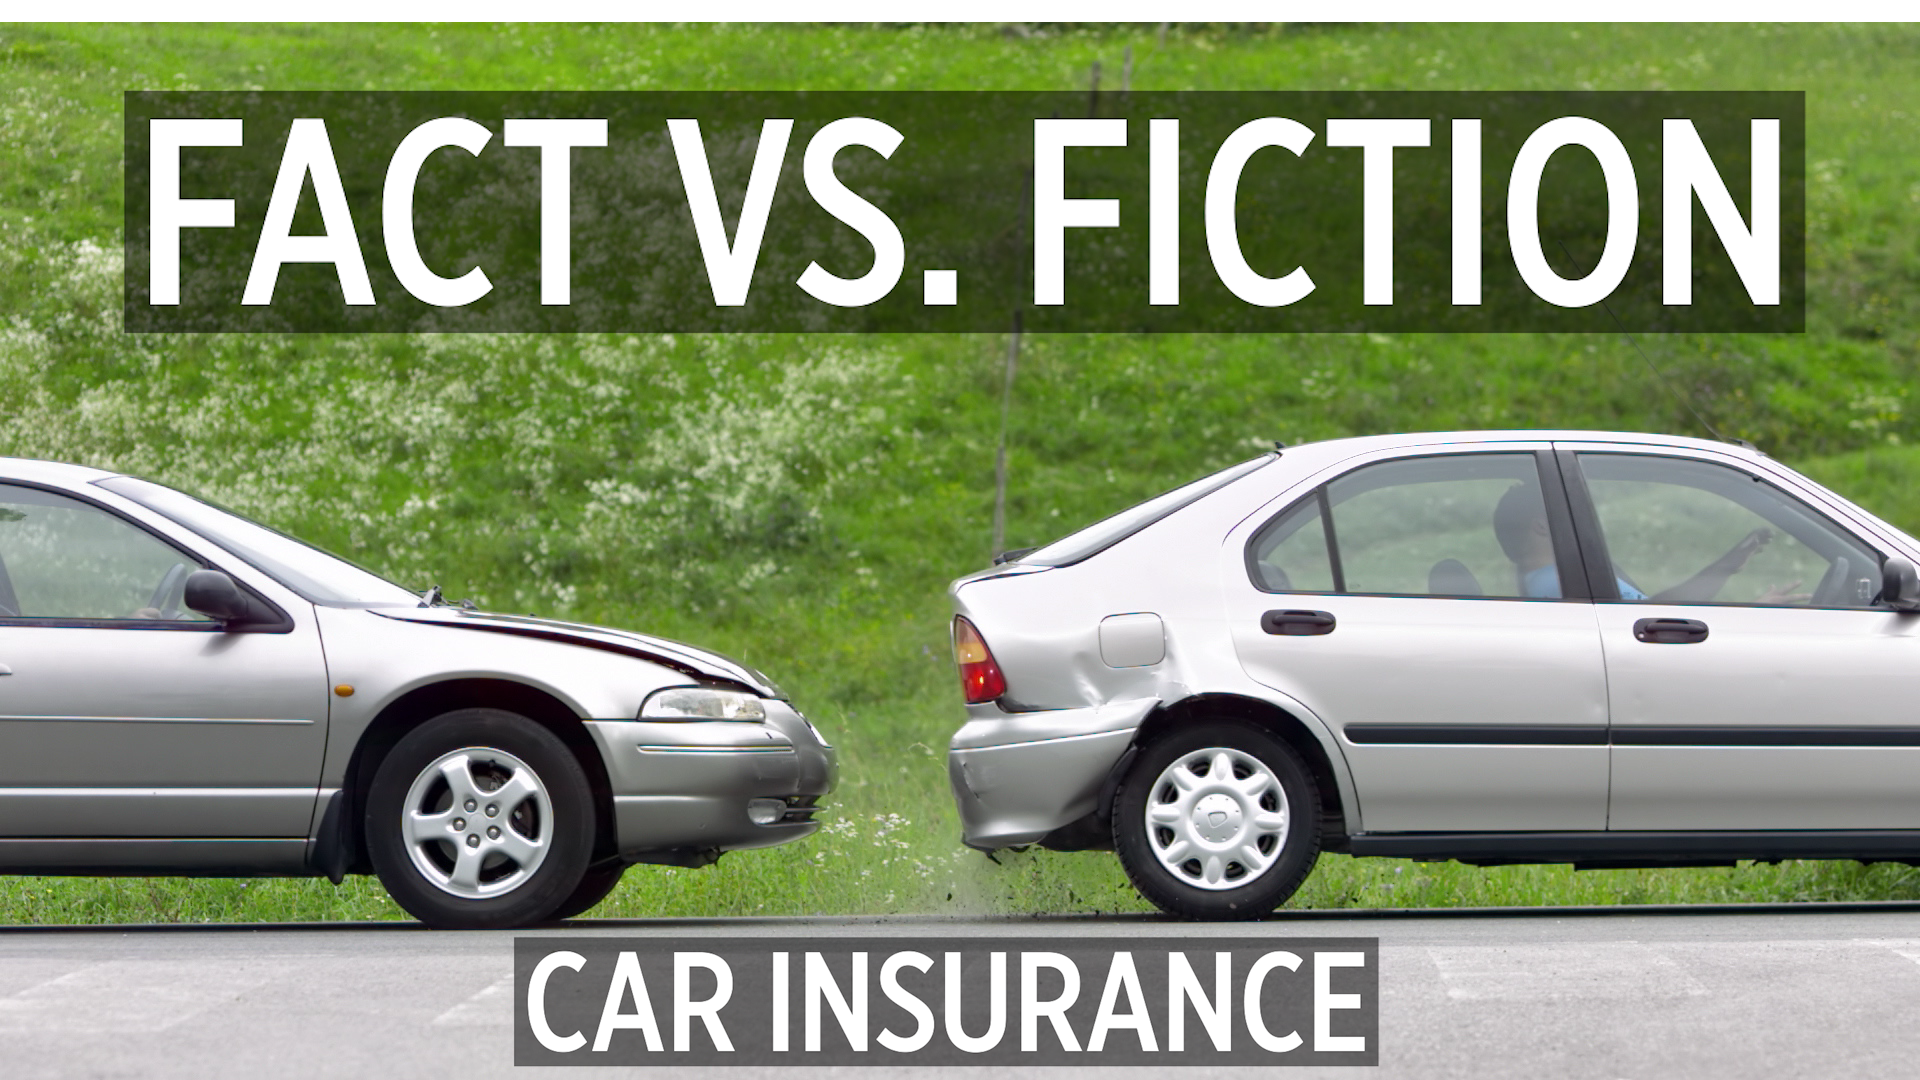 Amazing 5 Car Insurance Myths That Are Costing You Video